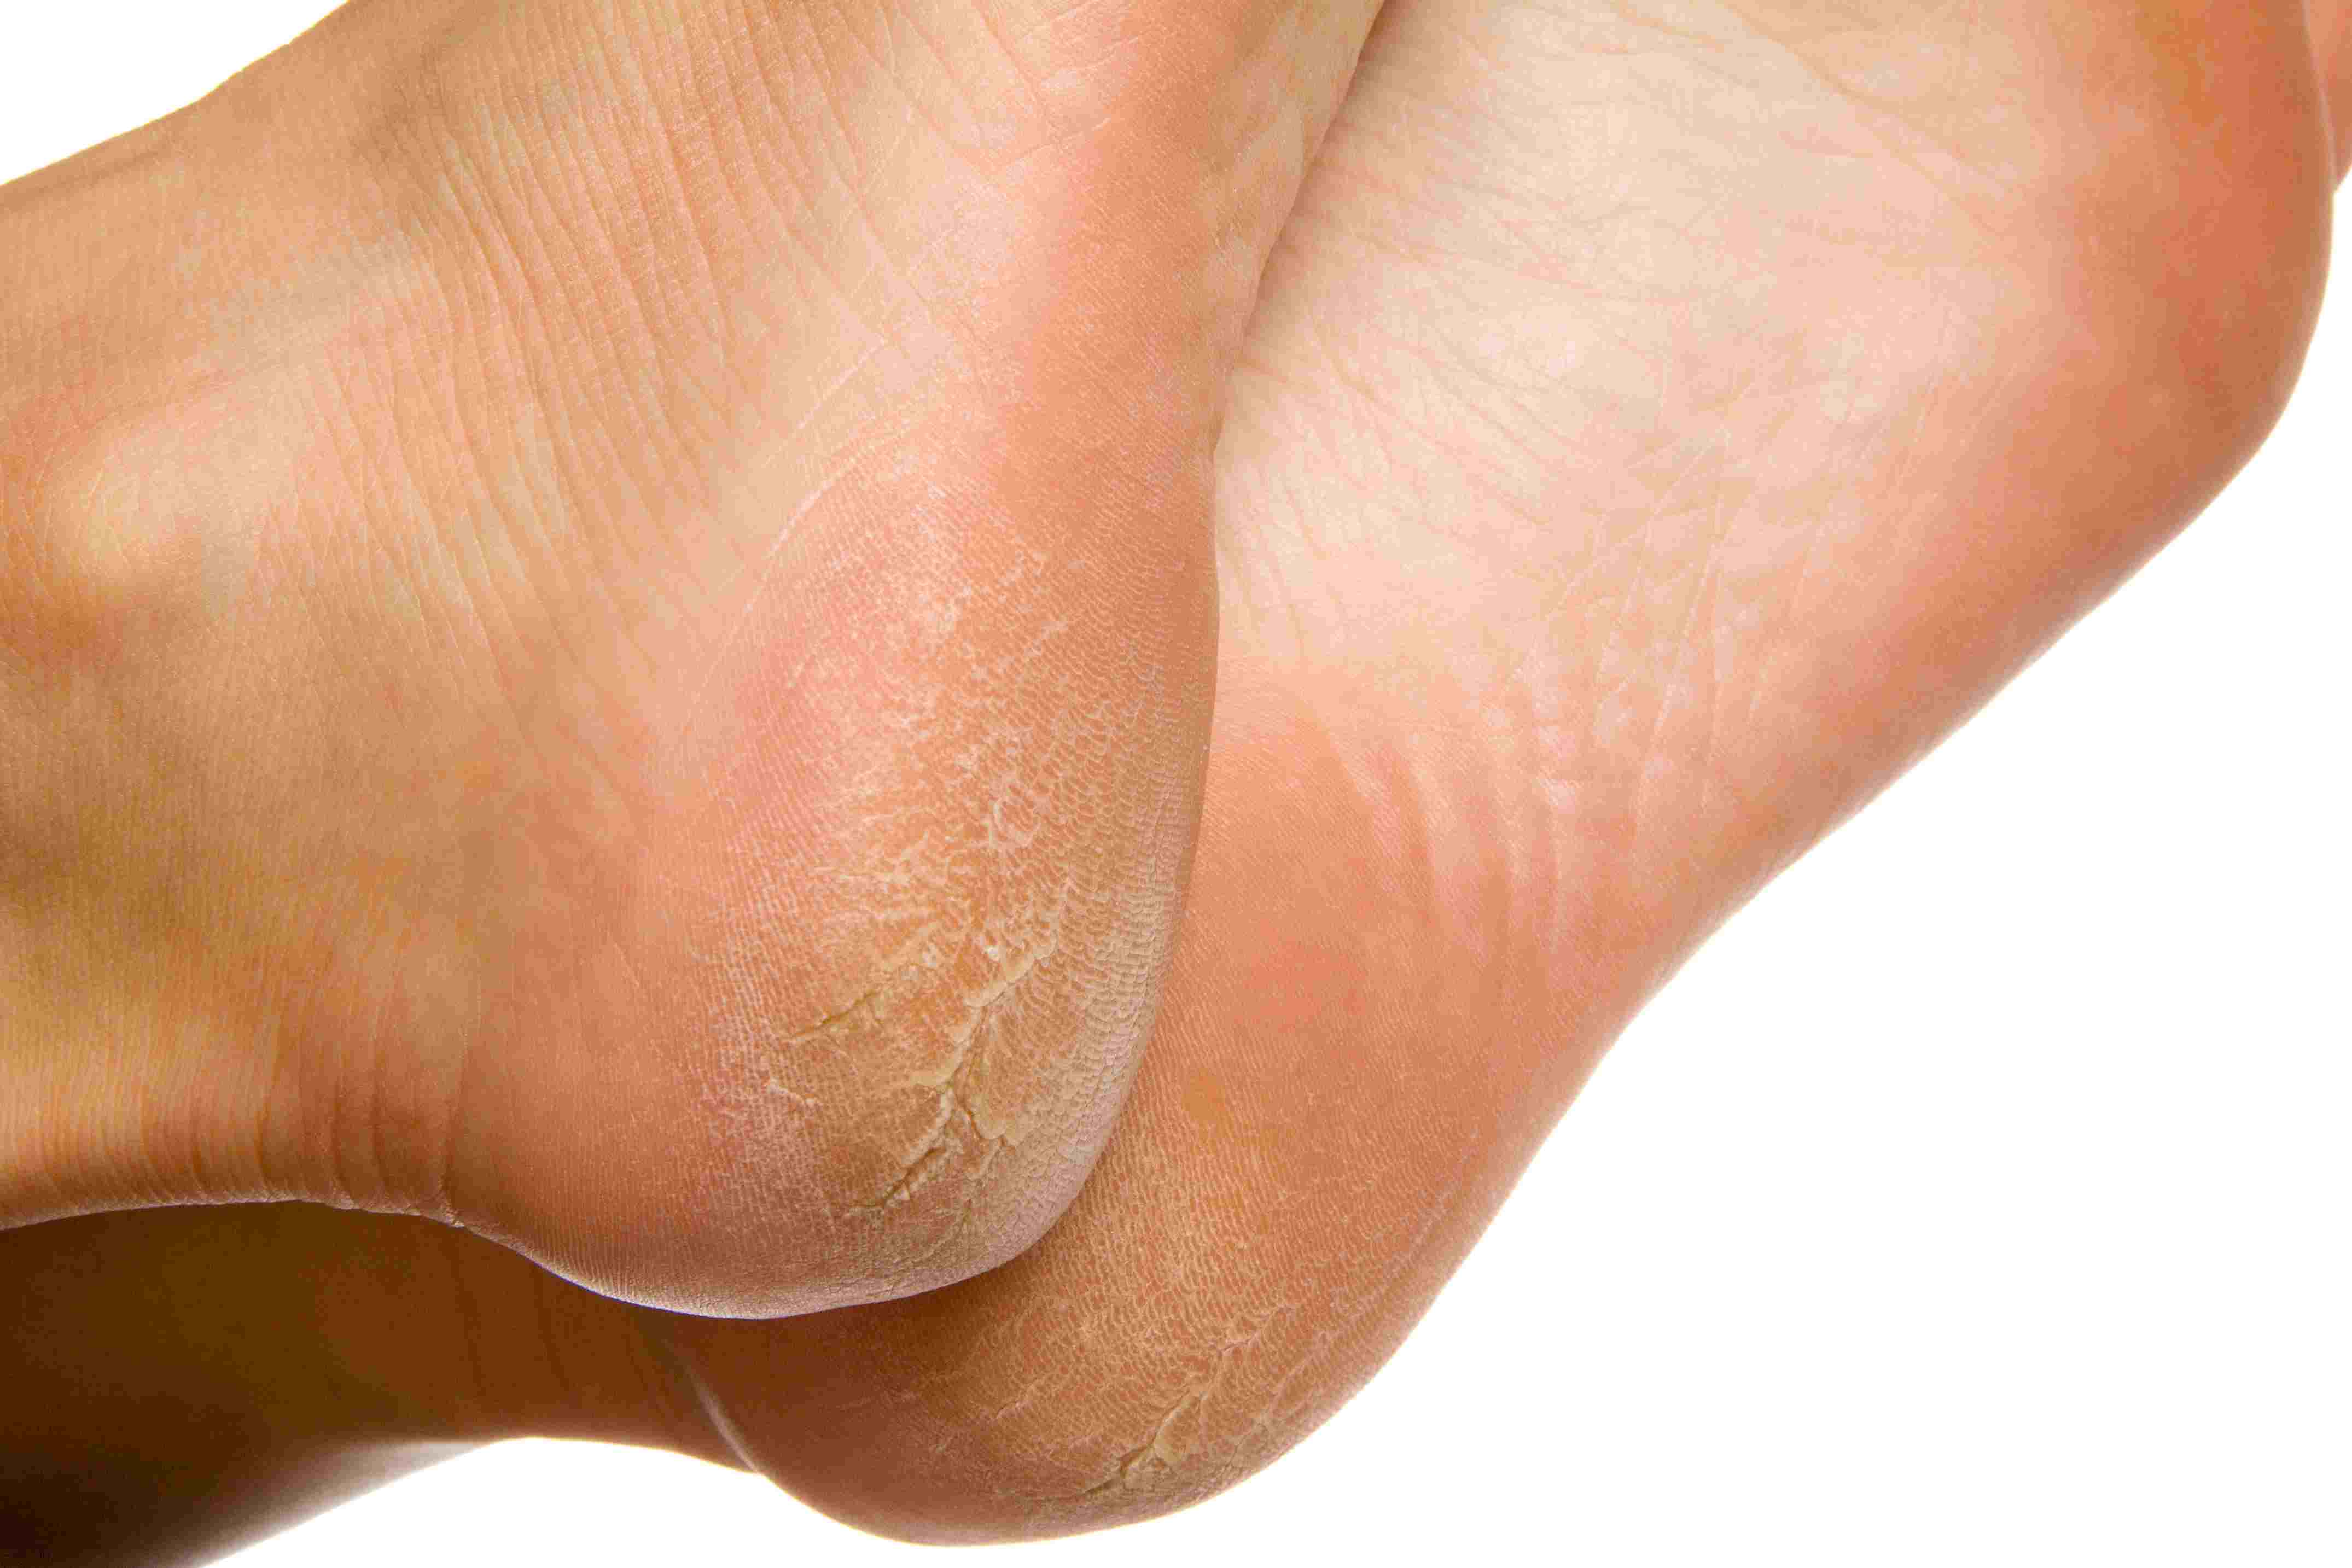 wart under foot symptoms)